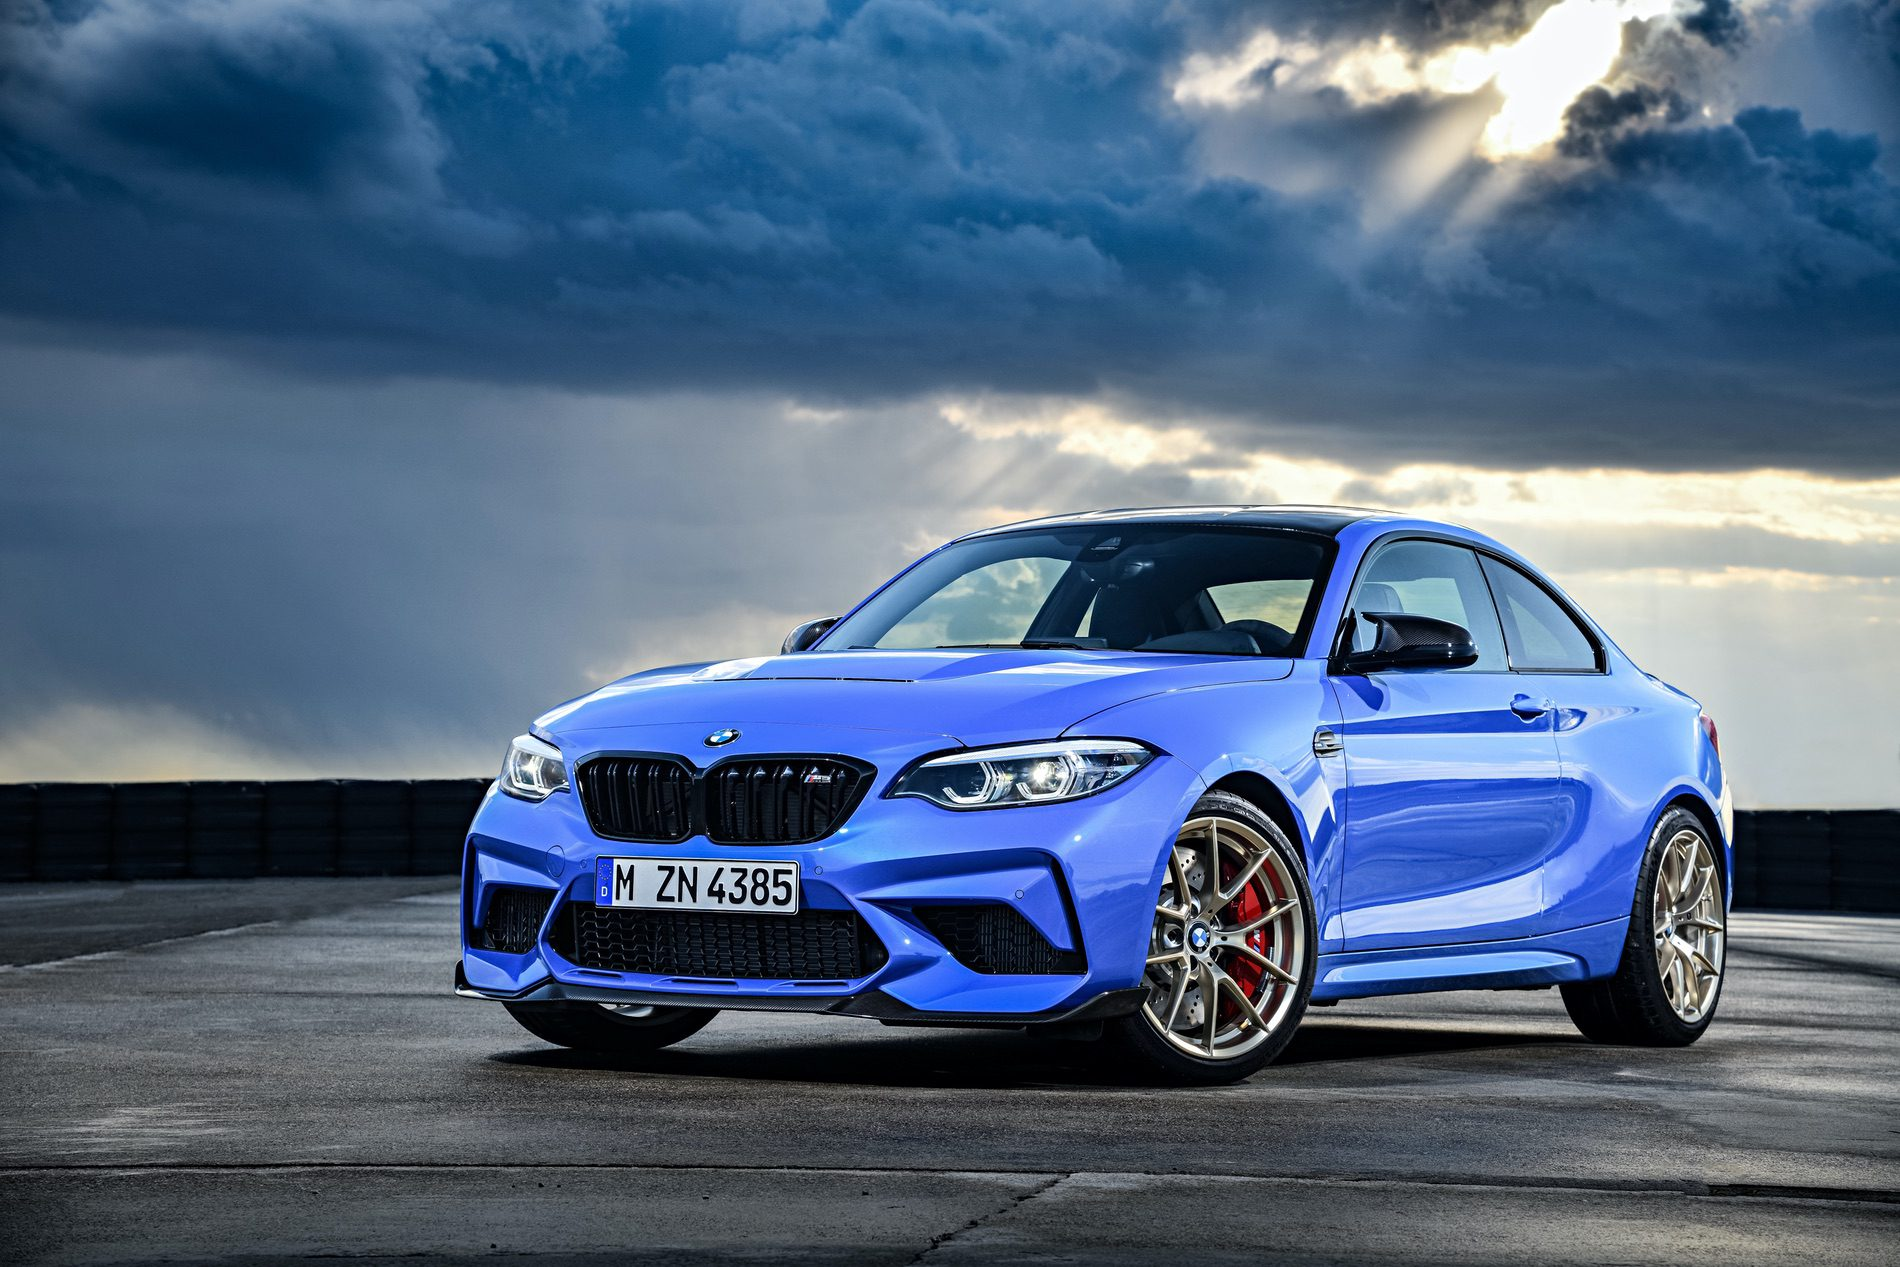 2021 BMW M2 CS Misano Blue 88